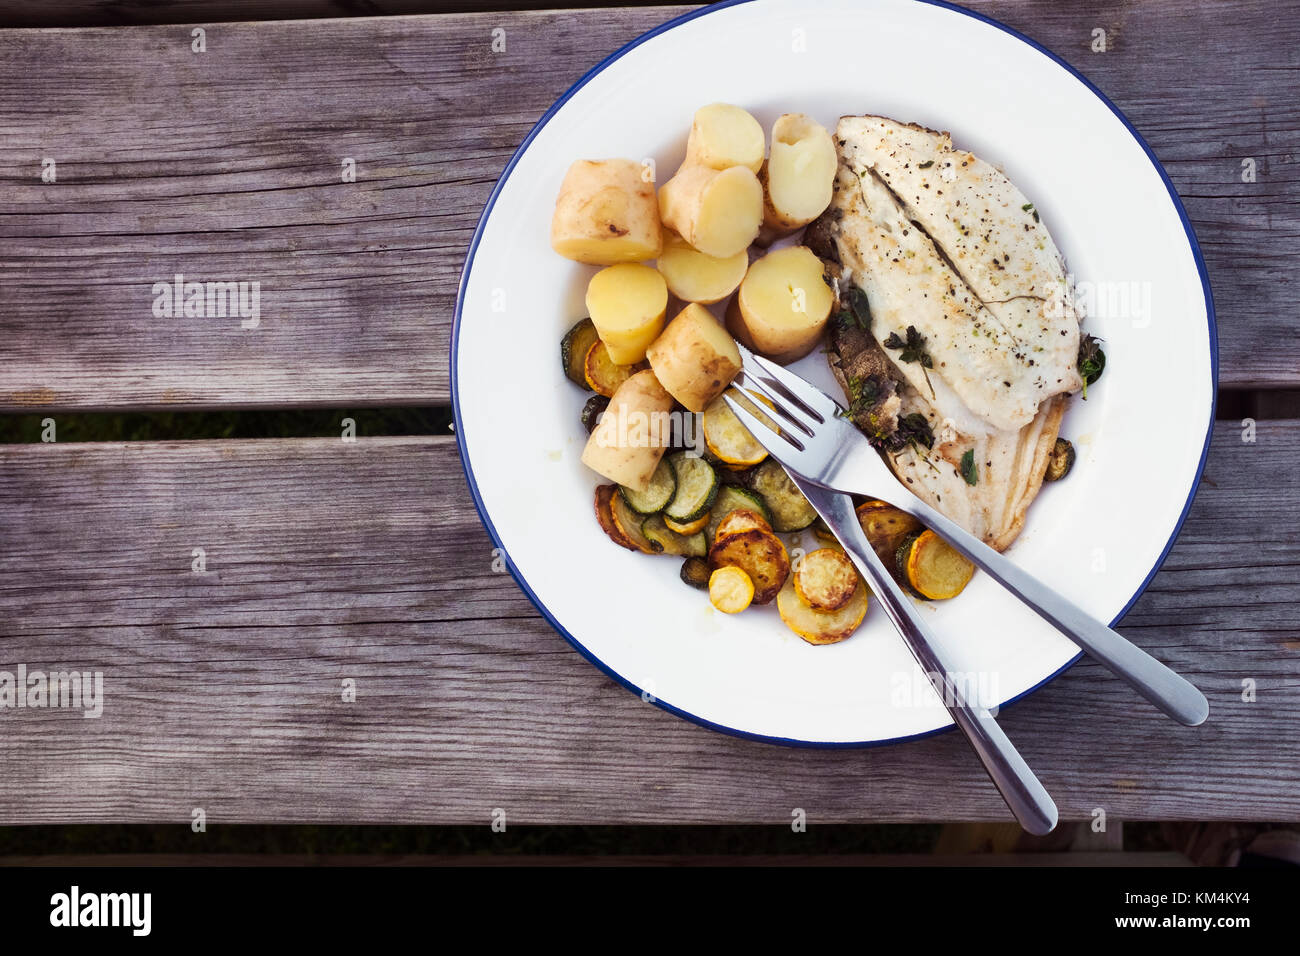 A plate of fresh grilled mackerel, cooked vegetables and potatoes on a plate with cutlery. - Stock Image